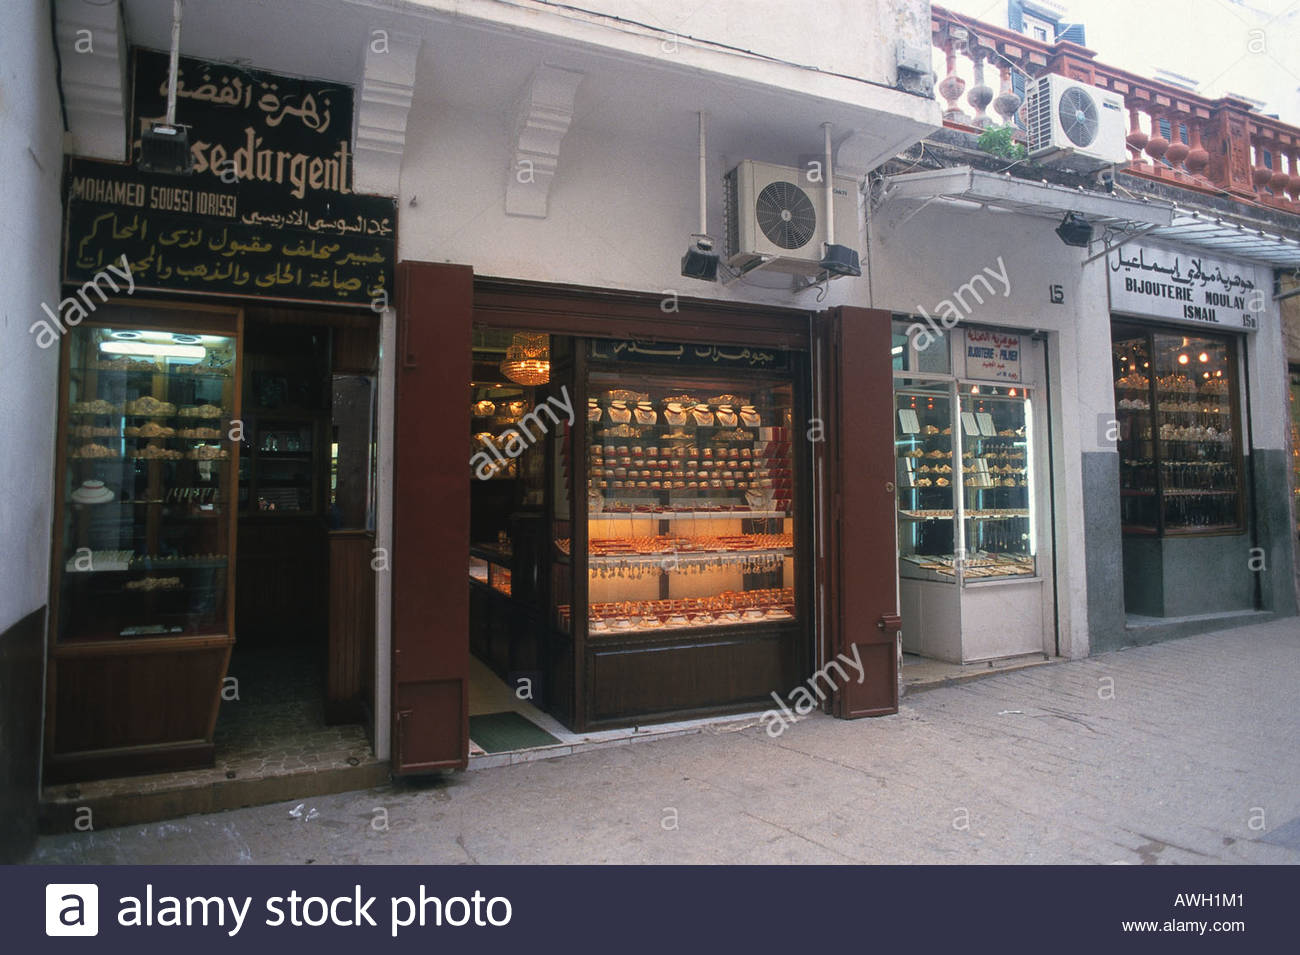 Morocco, Tangier, jeweller's shop façade near Rue Es-Siaghine - Stock Image